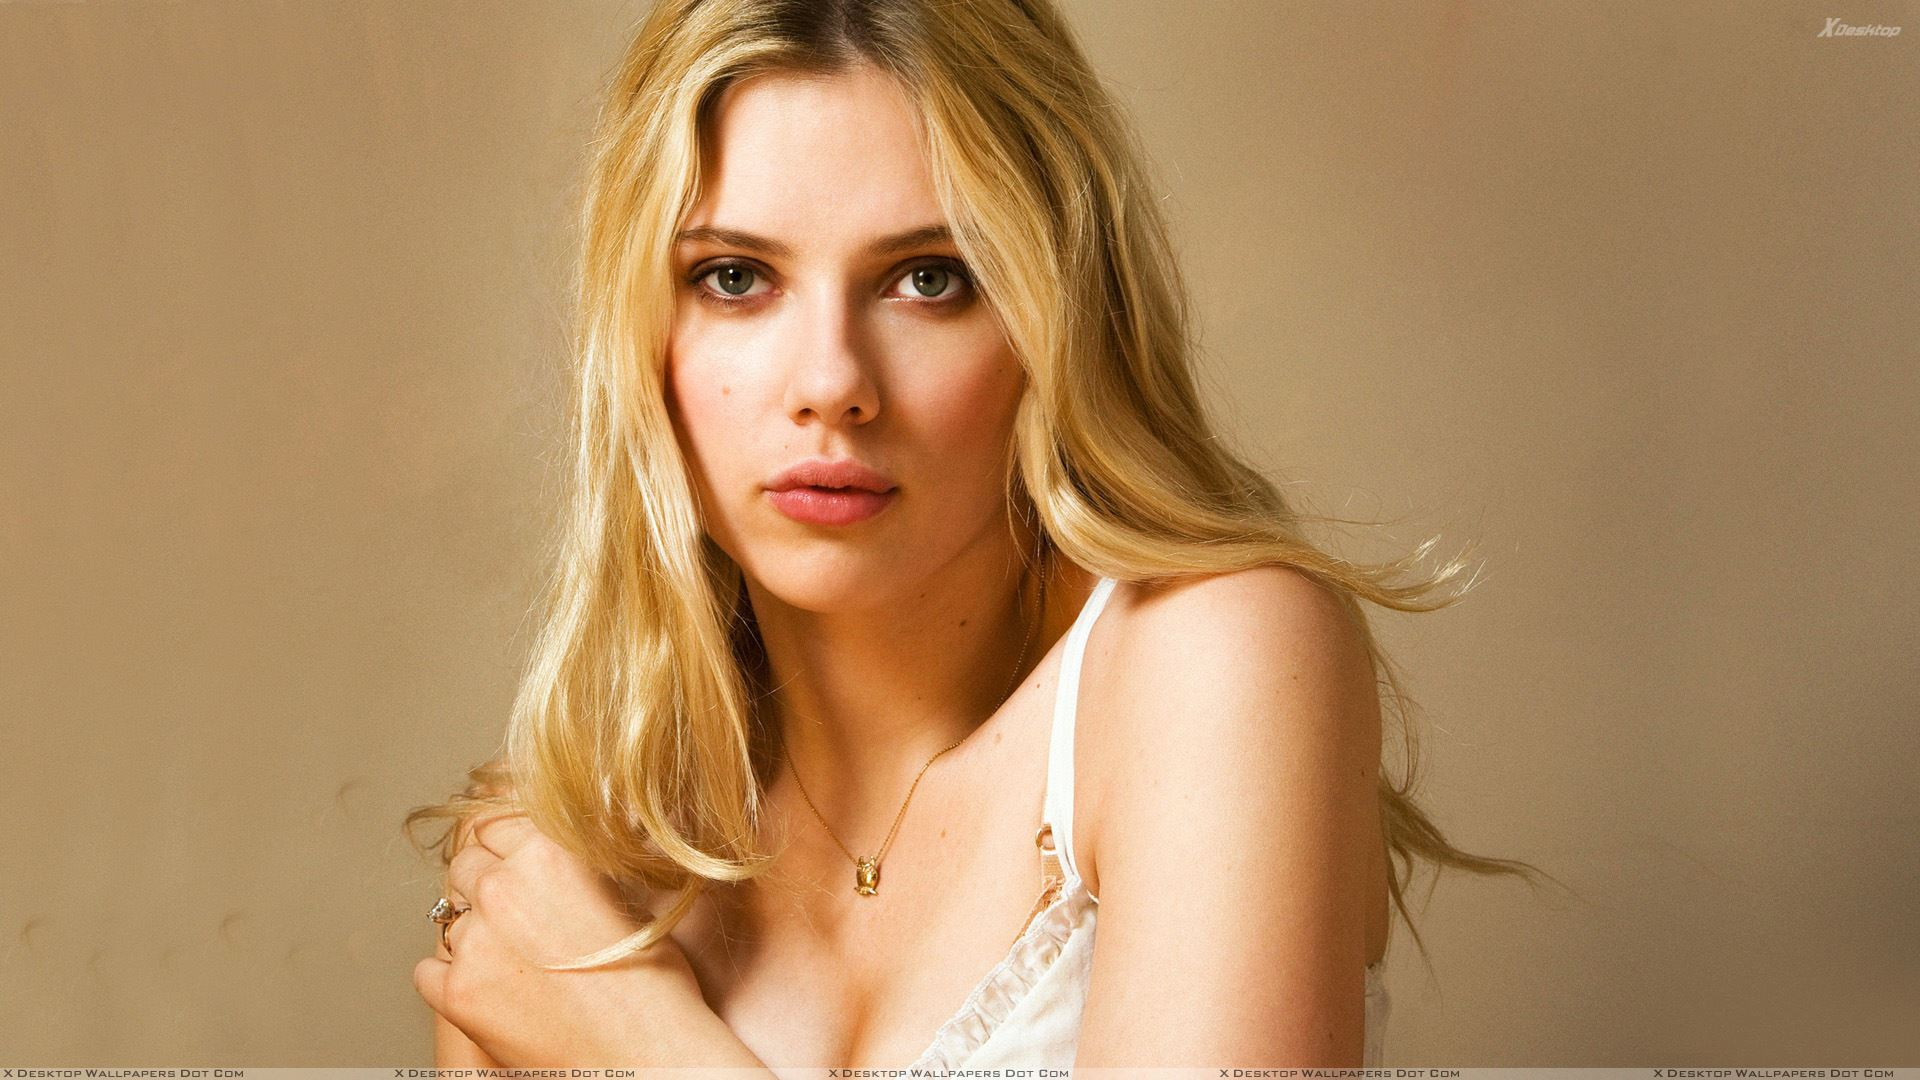 Scarlett Johansson Wallpapers Photos Images in HD 1920x1080